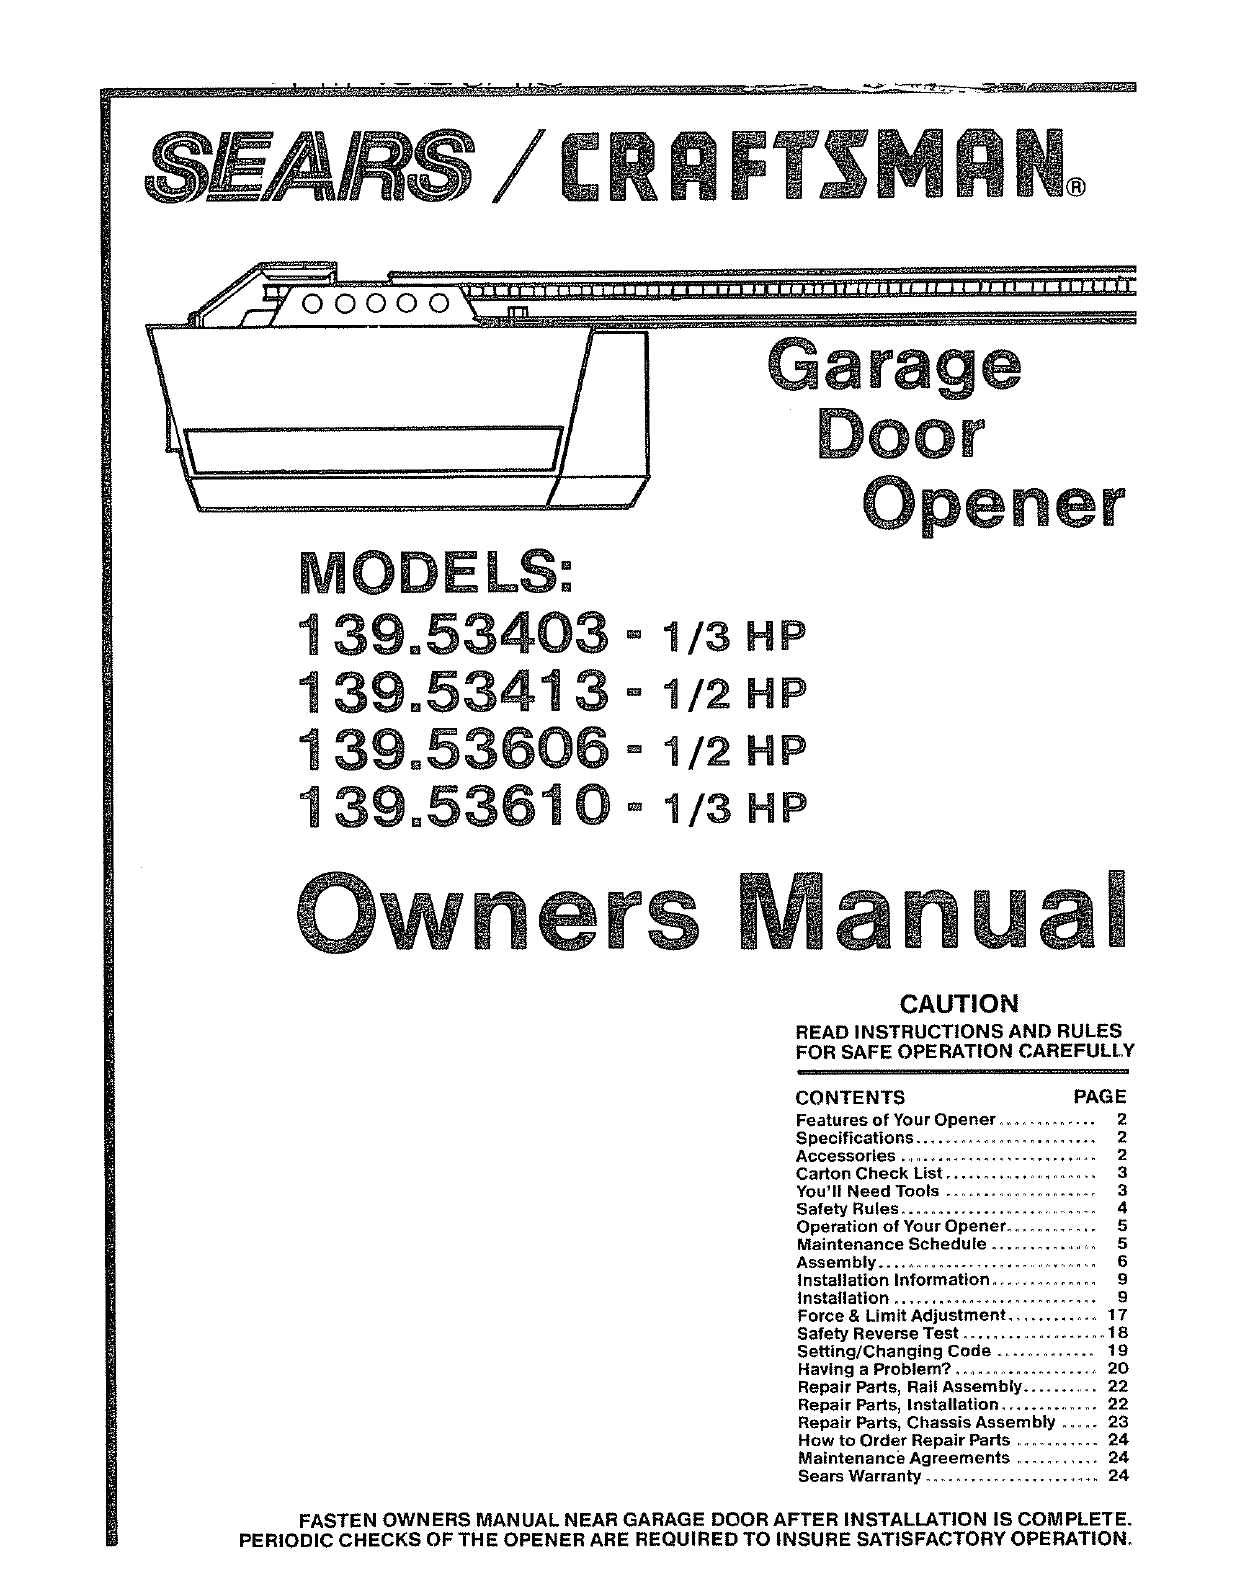 4e24e83f 95d3 4892 ae01 8deb09c598a8 bg1 craftsman garage door opener 139 53403 user guide manualsonline com Chamberlain Garage Door Opener Wiring- Diagram at alyssarenee.co